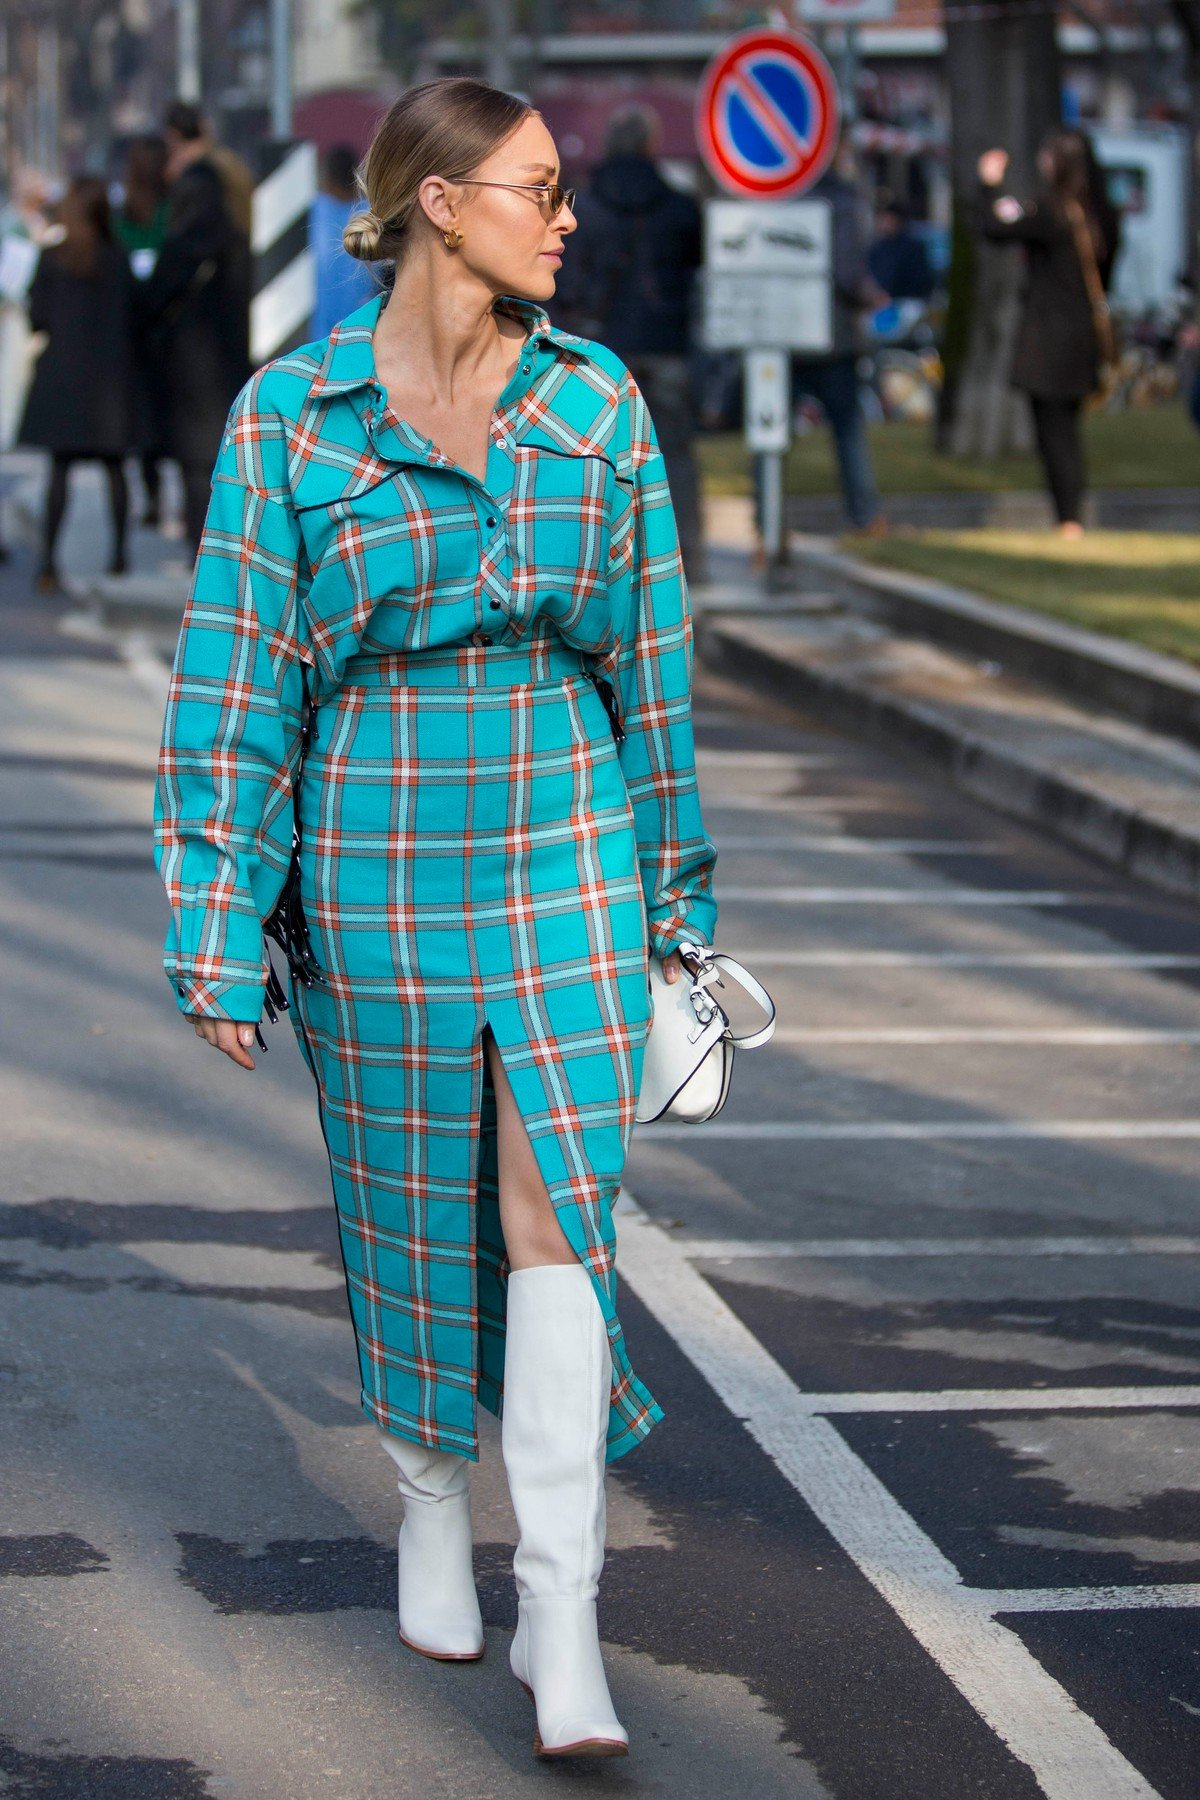 Fashion: street style at Milan Fashion Week 2019 outside of the Armani show in Milan on February 21, 2019. 21 Feb 2019, Image: 415407186, License: Rights-managed, Restrictions: World Rights, Model Release: no, Credit line: Profimedia, Mega Agency